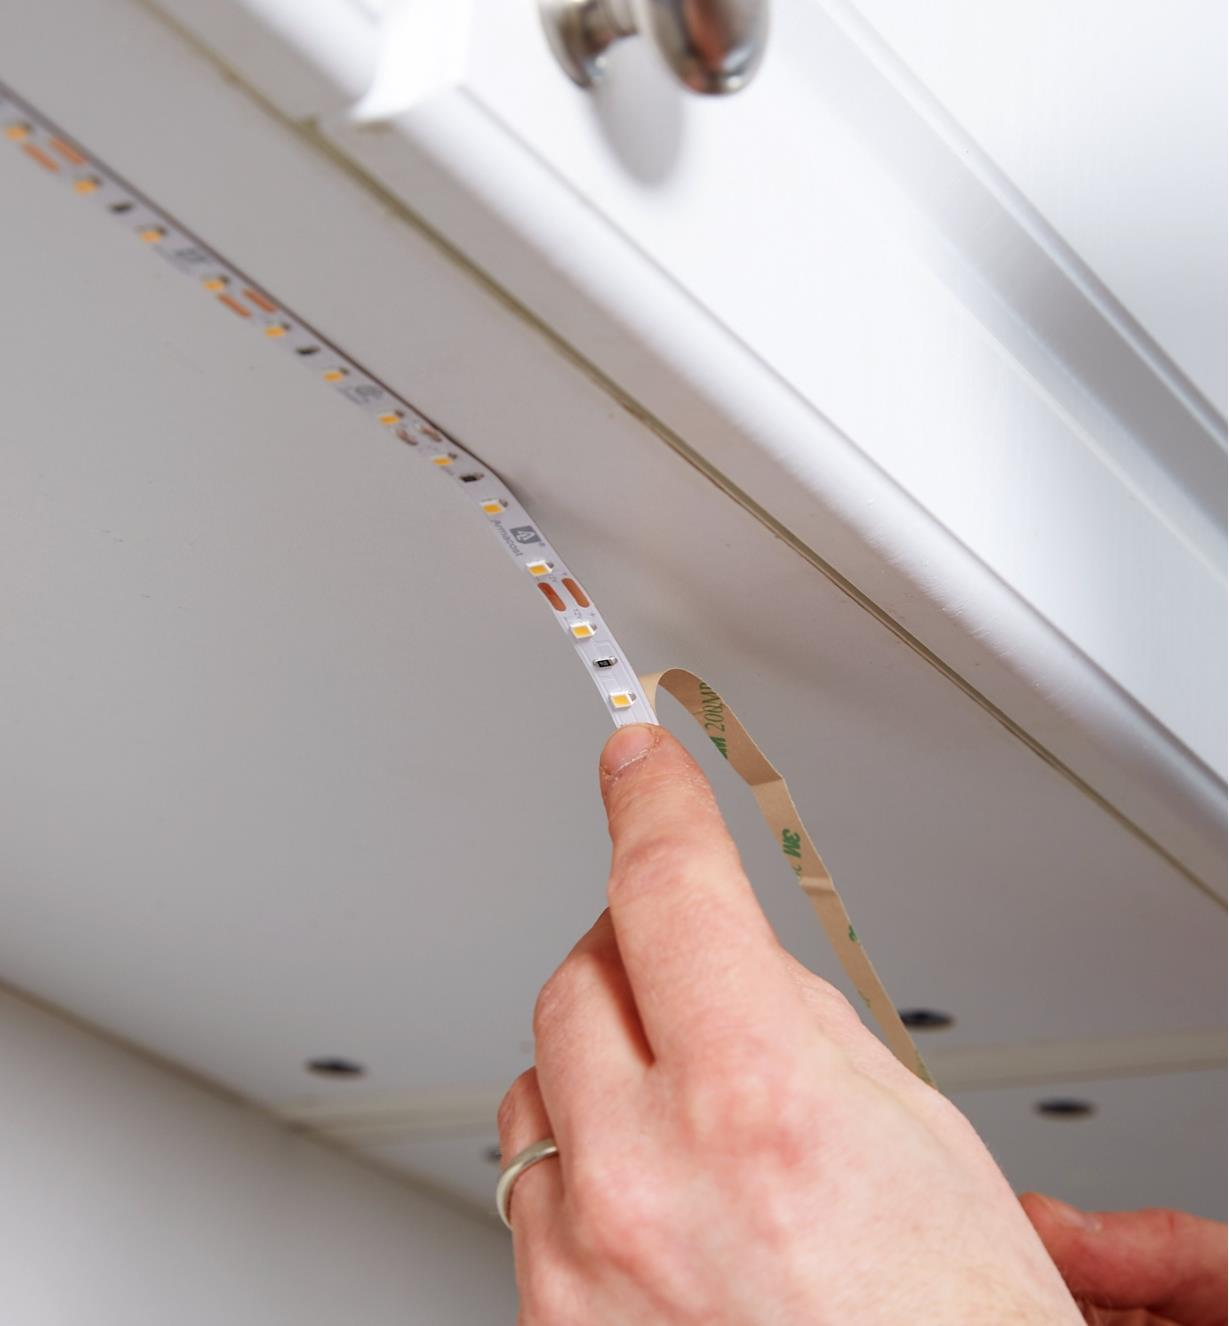 Mounting LED tape lighting to the underside of a cupboard using its peel-and-stick backing